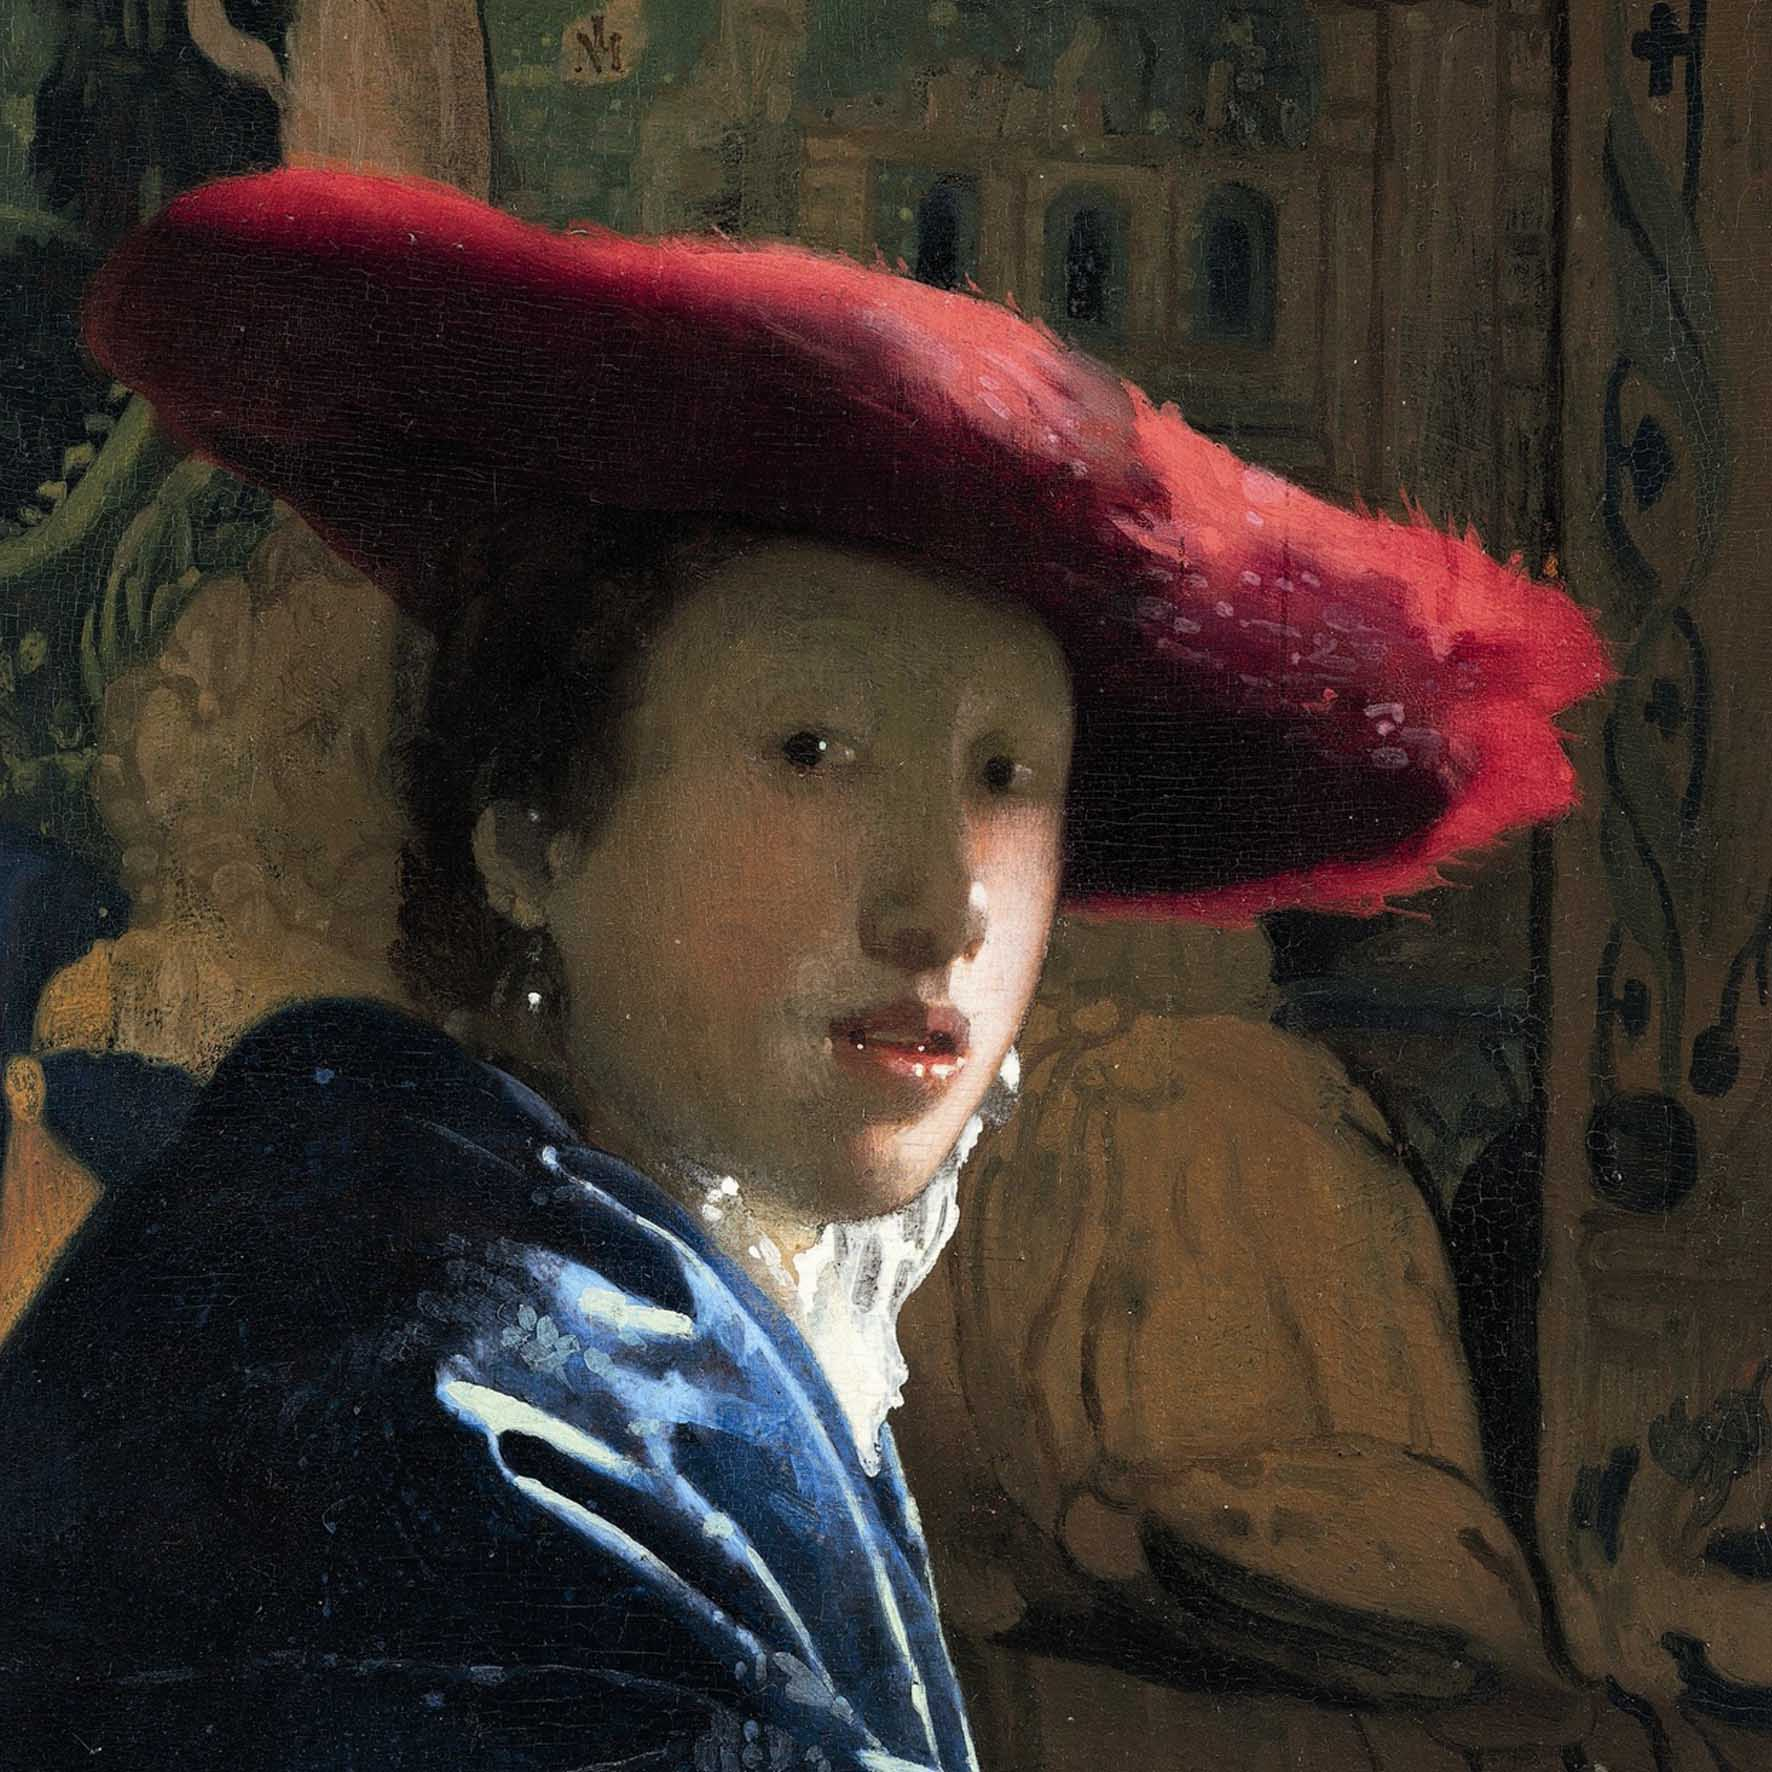 VERMEER. THE GOLDEN AGE OF DUTCH ART